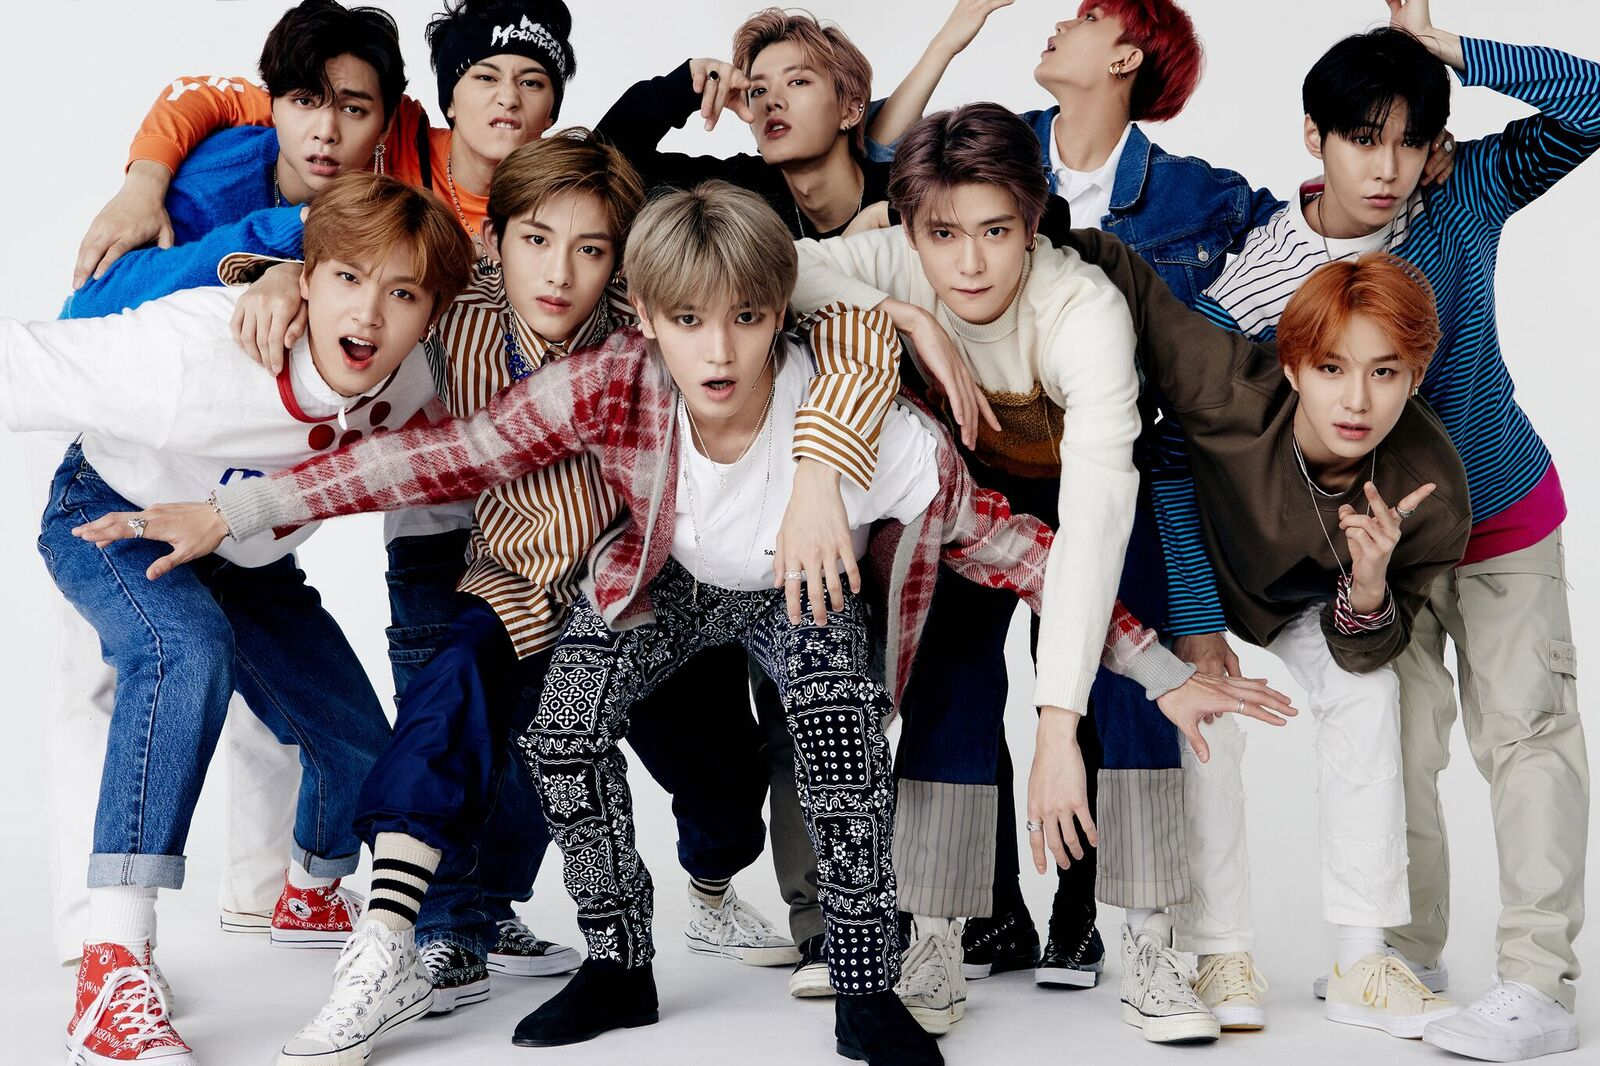 .@NCTsmtown_127's global takeover: Get to know your newest favorite K-Pop group. https://t.co/RmRjEigl4U https://t.co/Mu5eLOrVq7